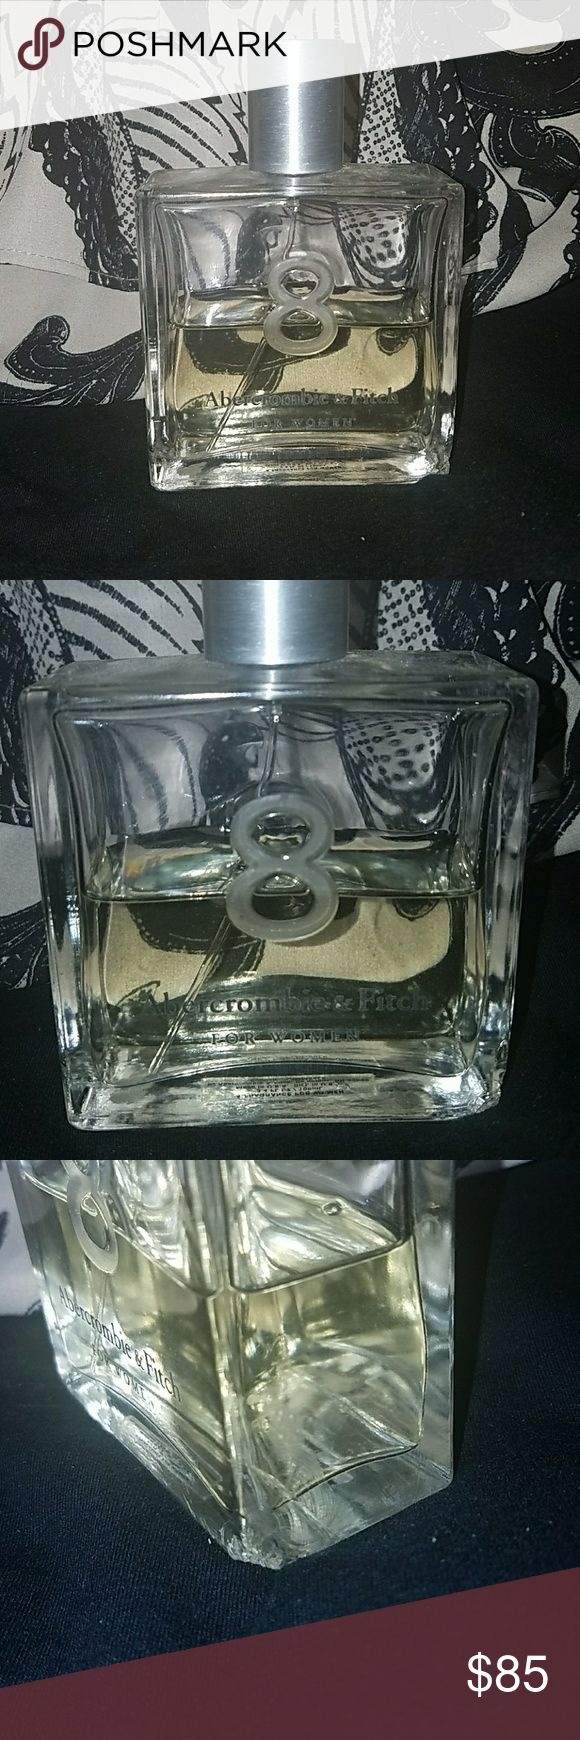 Abercrombie & Fitch 8 Original Perfume 3.4 fl oz Exactly 50% is remaining. This is the large 3.4 fl oz bottle of Abercrombie & Fitch 8 Women's Original Perfume. The bottle does have a chip on the side but does not affect anything. The sprayer comes out in more of a stream then mist. Smells awesome! This has been discontinued! Abercrombie & Fitch Makeup